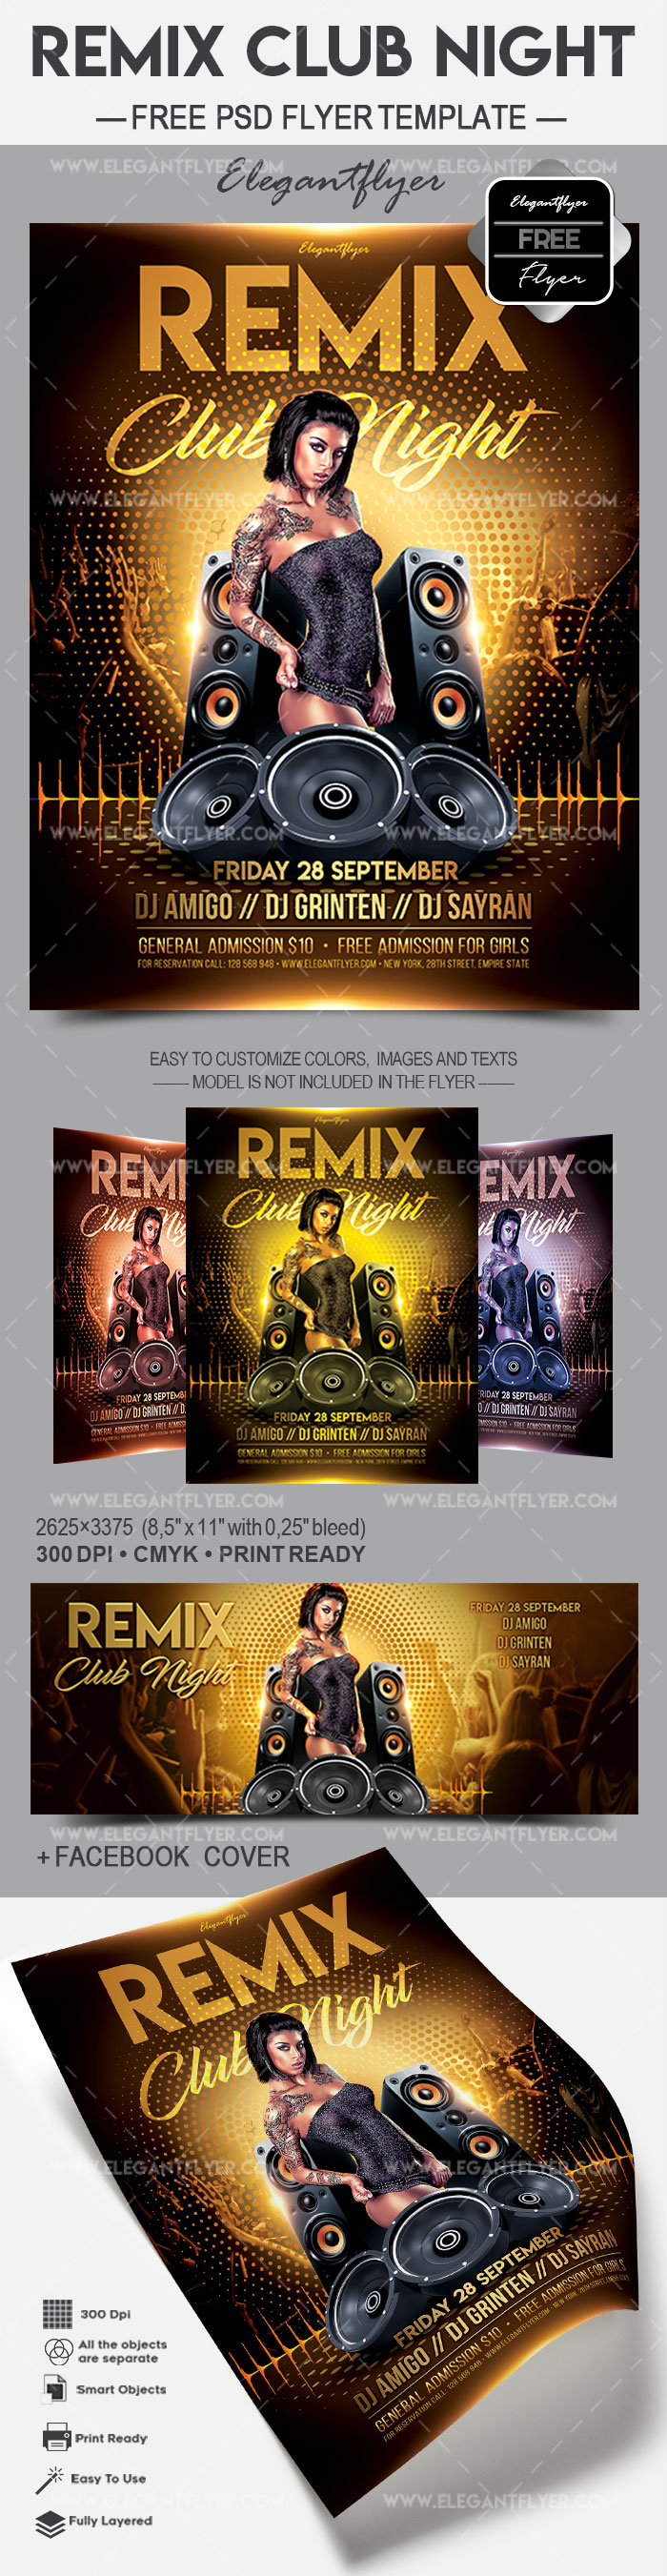 Remix Club Night – Free Flyer PSD Template